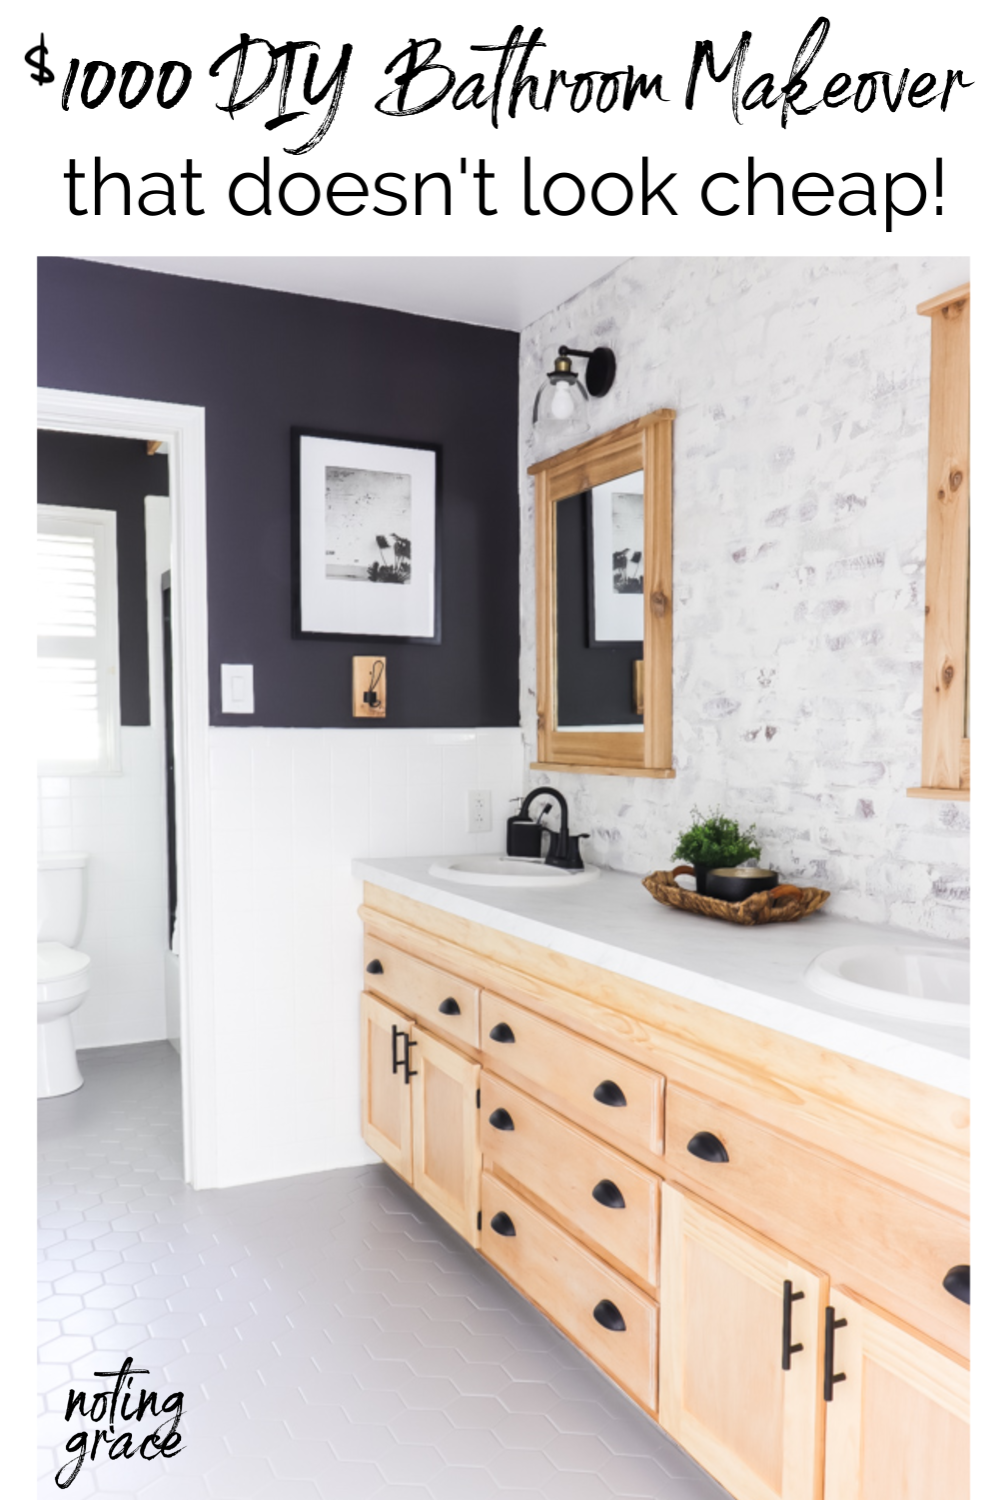 $1000 DIY Bathroom Makeover that doesn't look Cheap (With ...